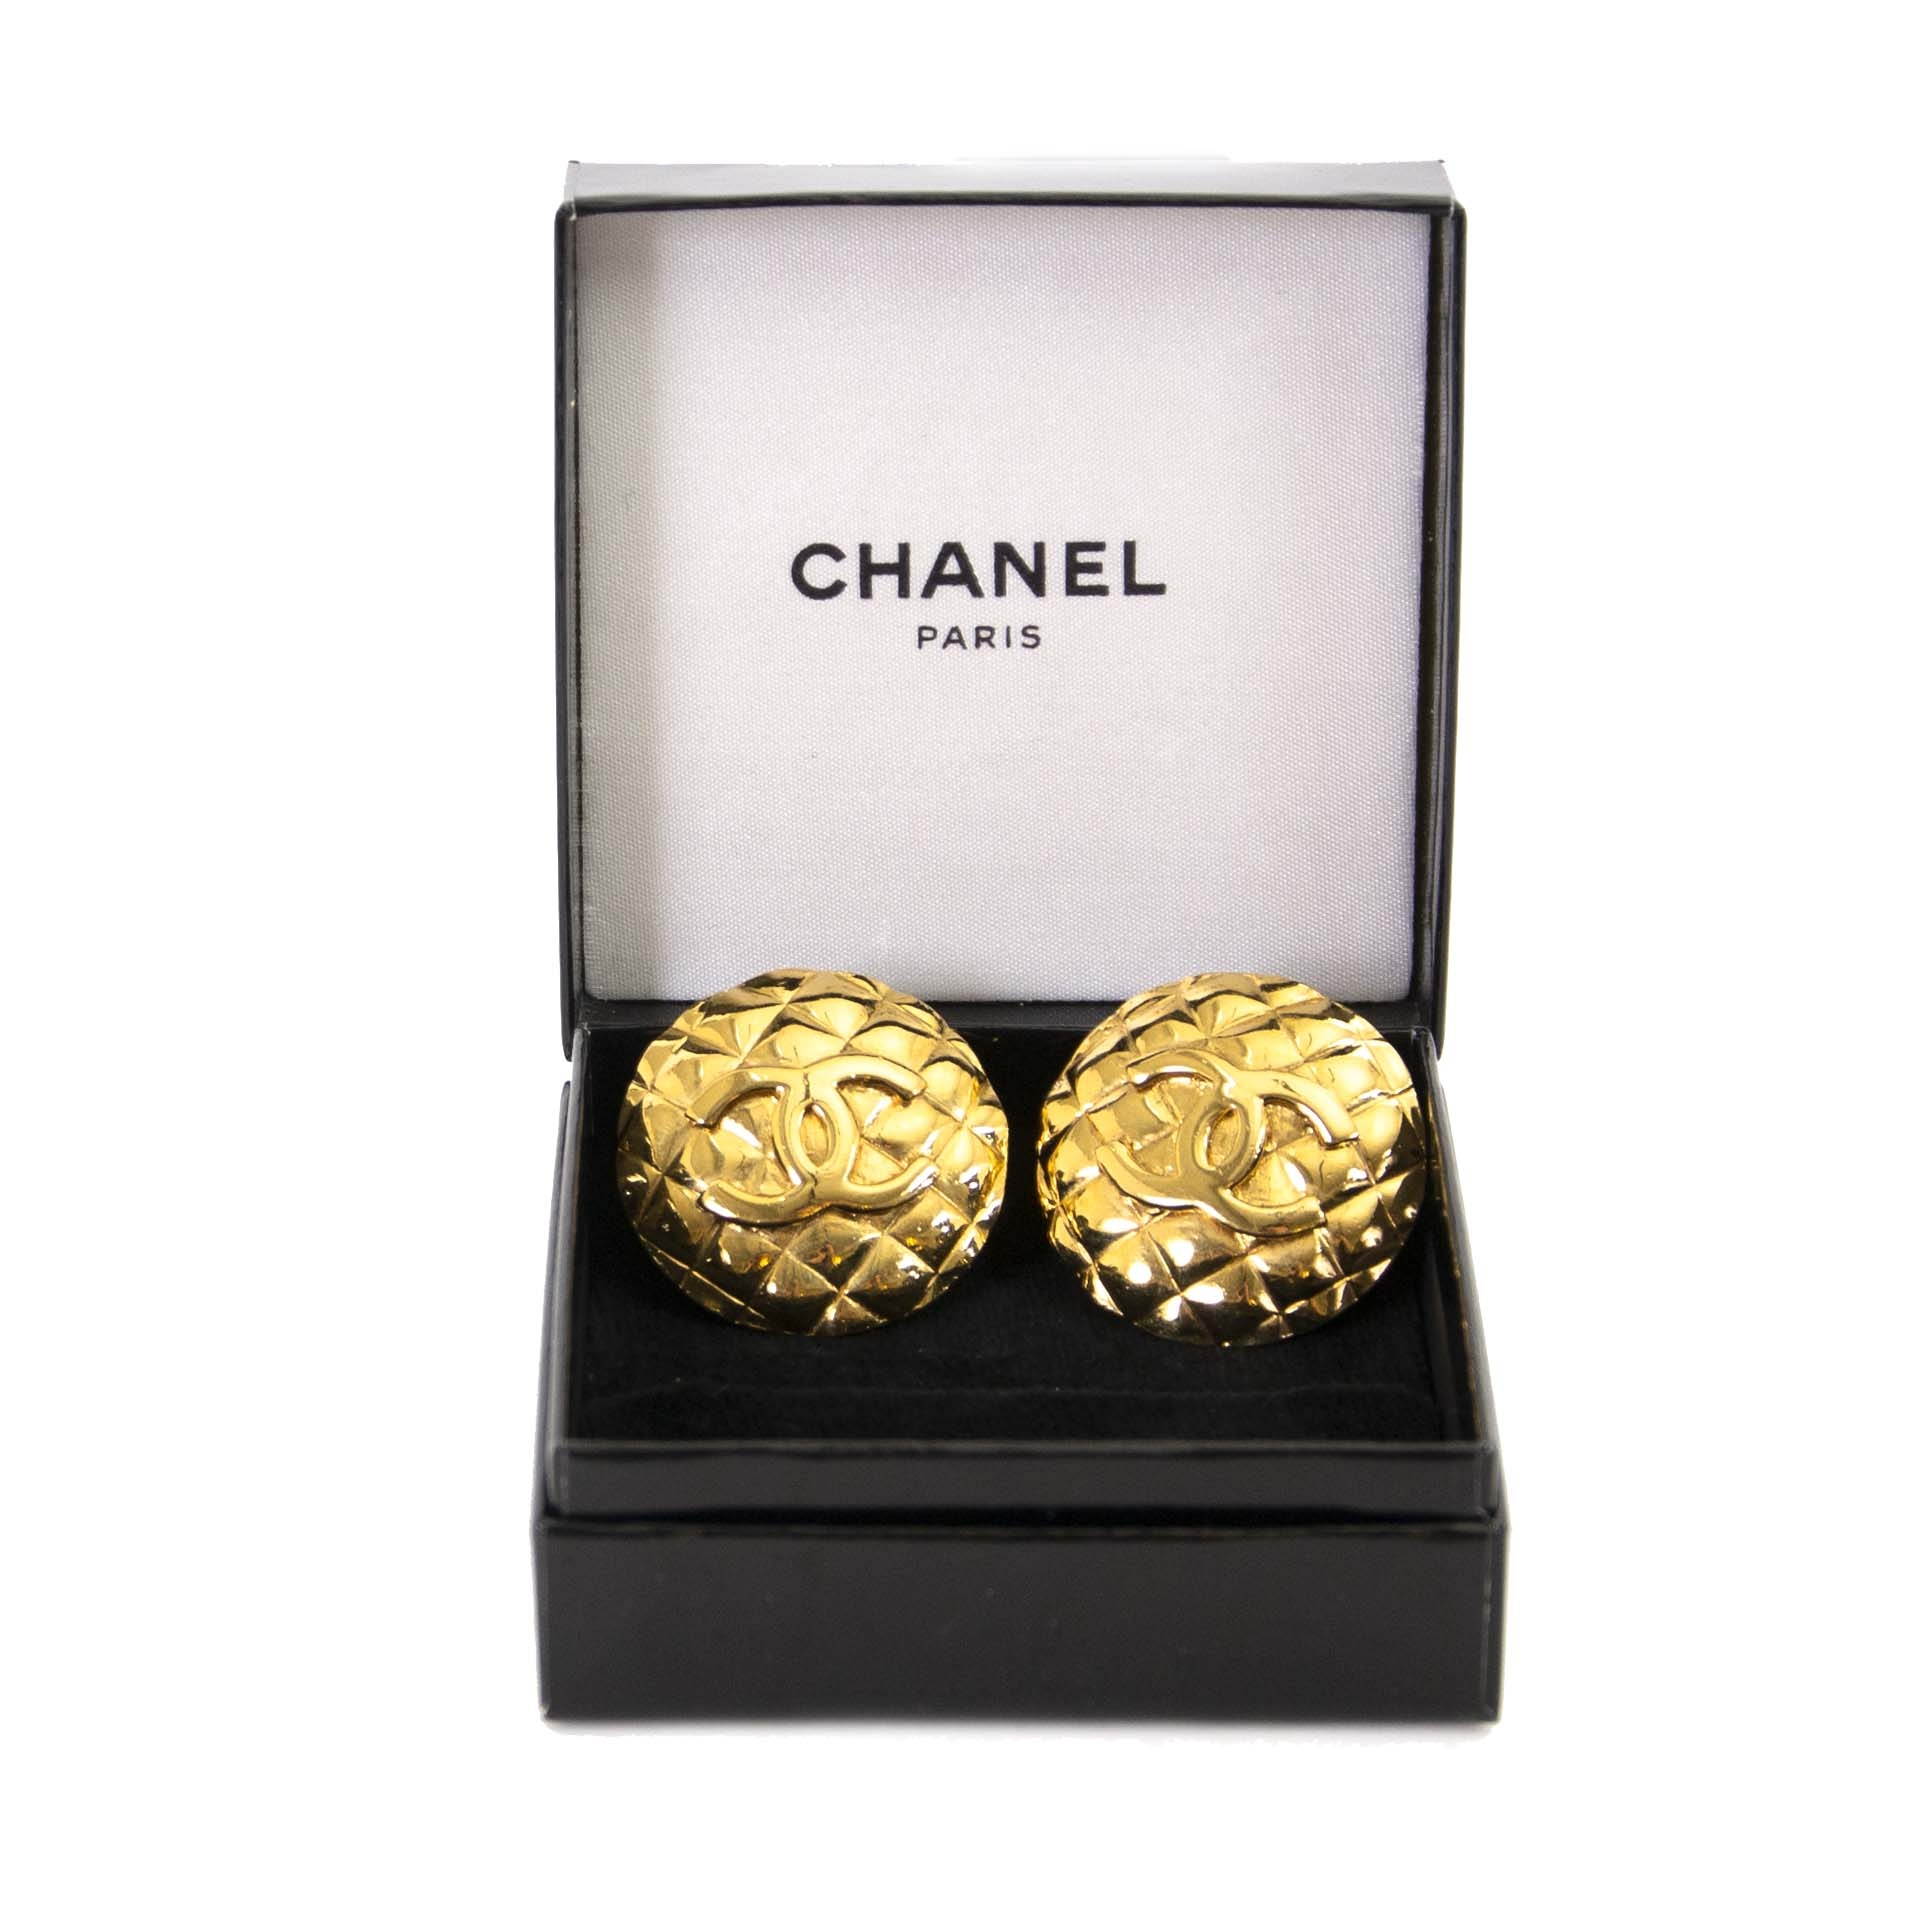 Authentique vintage Chanel golden logo clip on earrings achète en ligne webshop LabelLOV